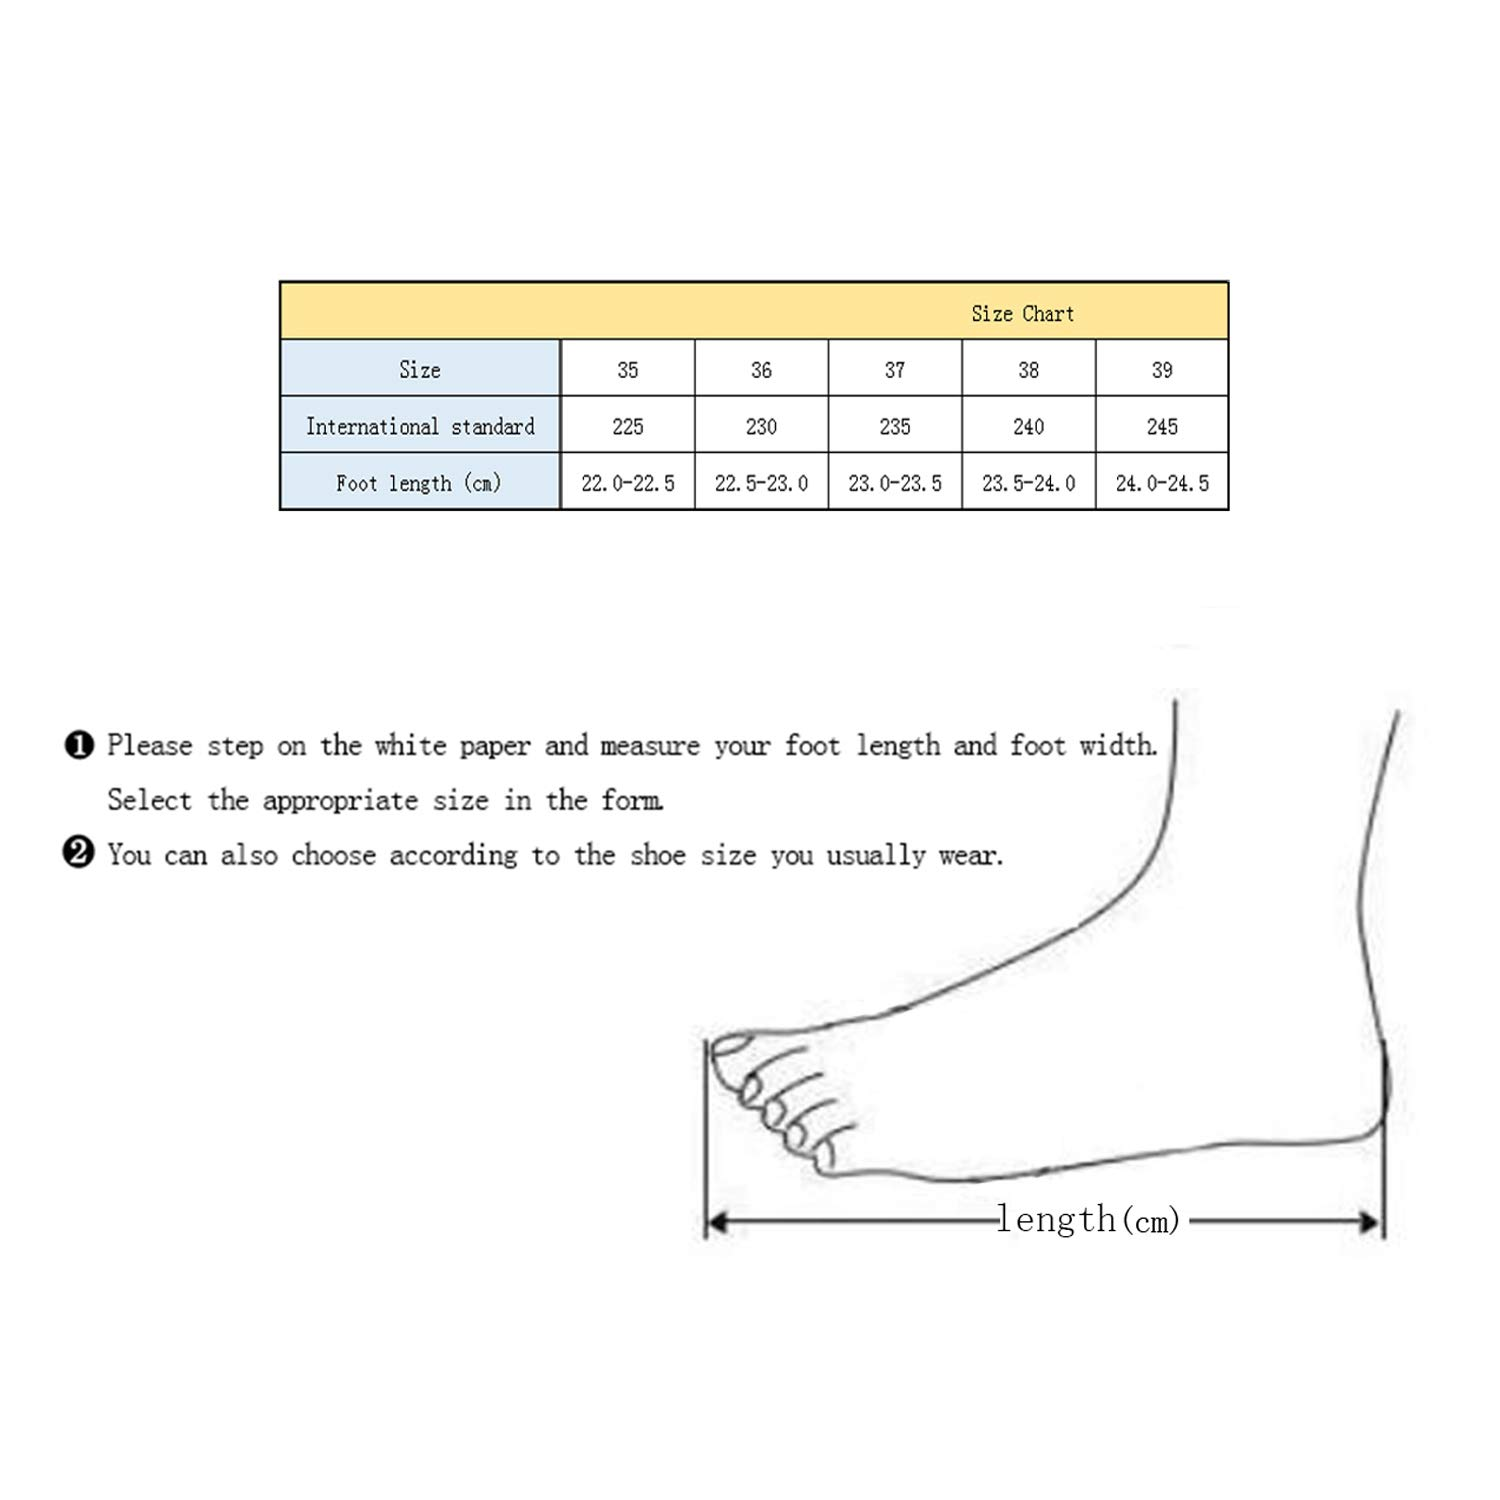 Women's Shoes Comfort Breathable Leather Sneaker Comfort Mesh Fashion Athletic Sneakers Non-Slip Impact Resistant Fashion Mesh Trainers Shoes Camping Gym Park (Color : B, Size : 36) B07HKT17X3 Fashion Sneakers a8a1ce